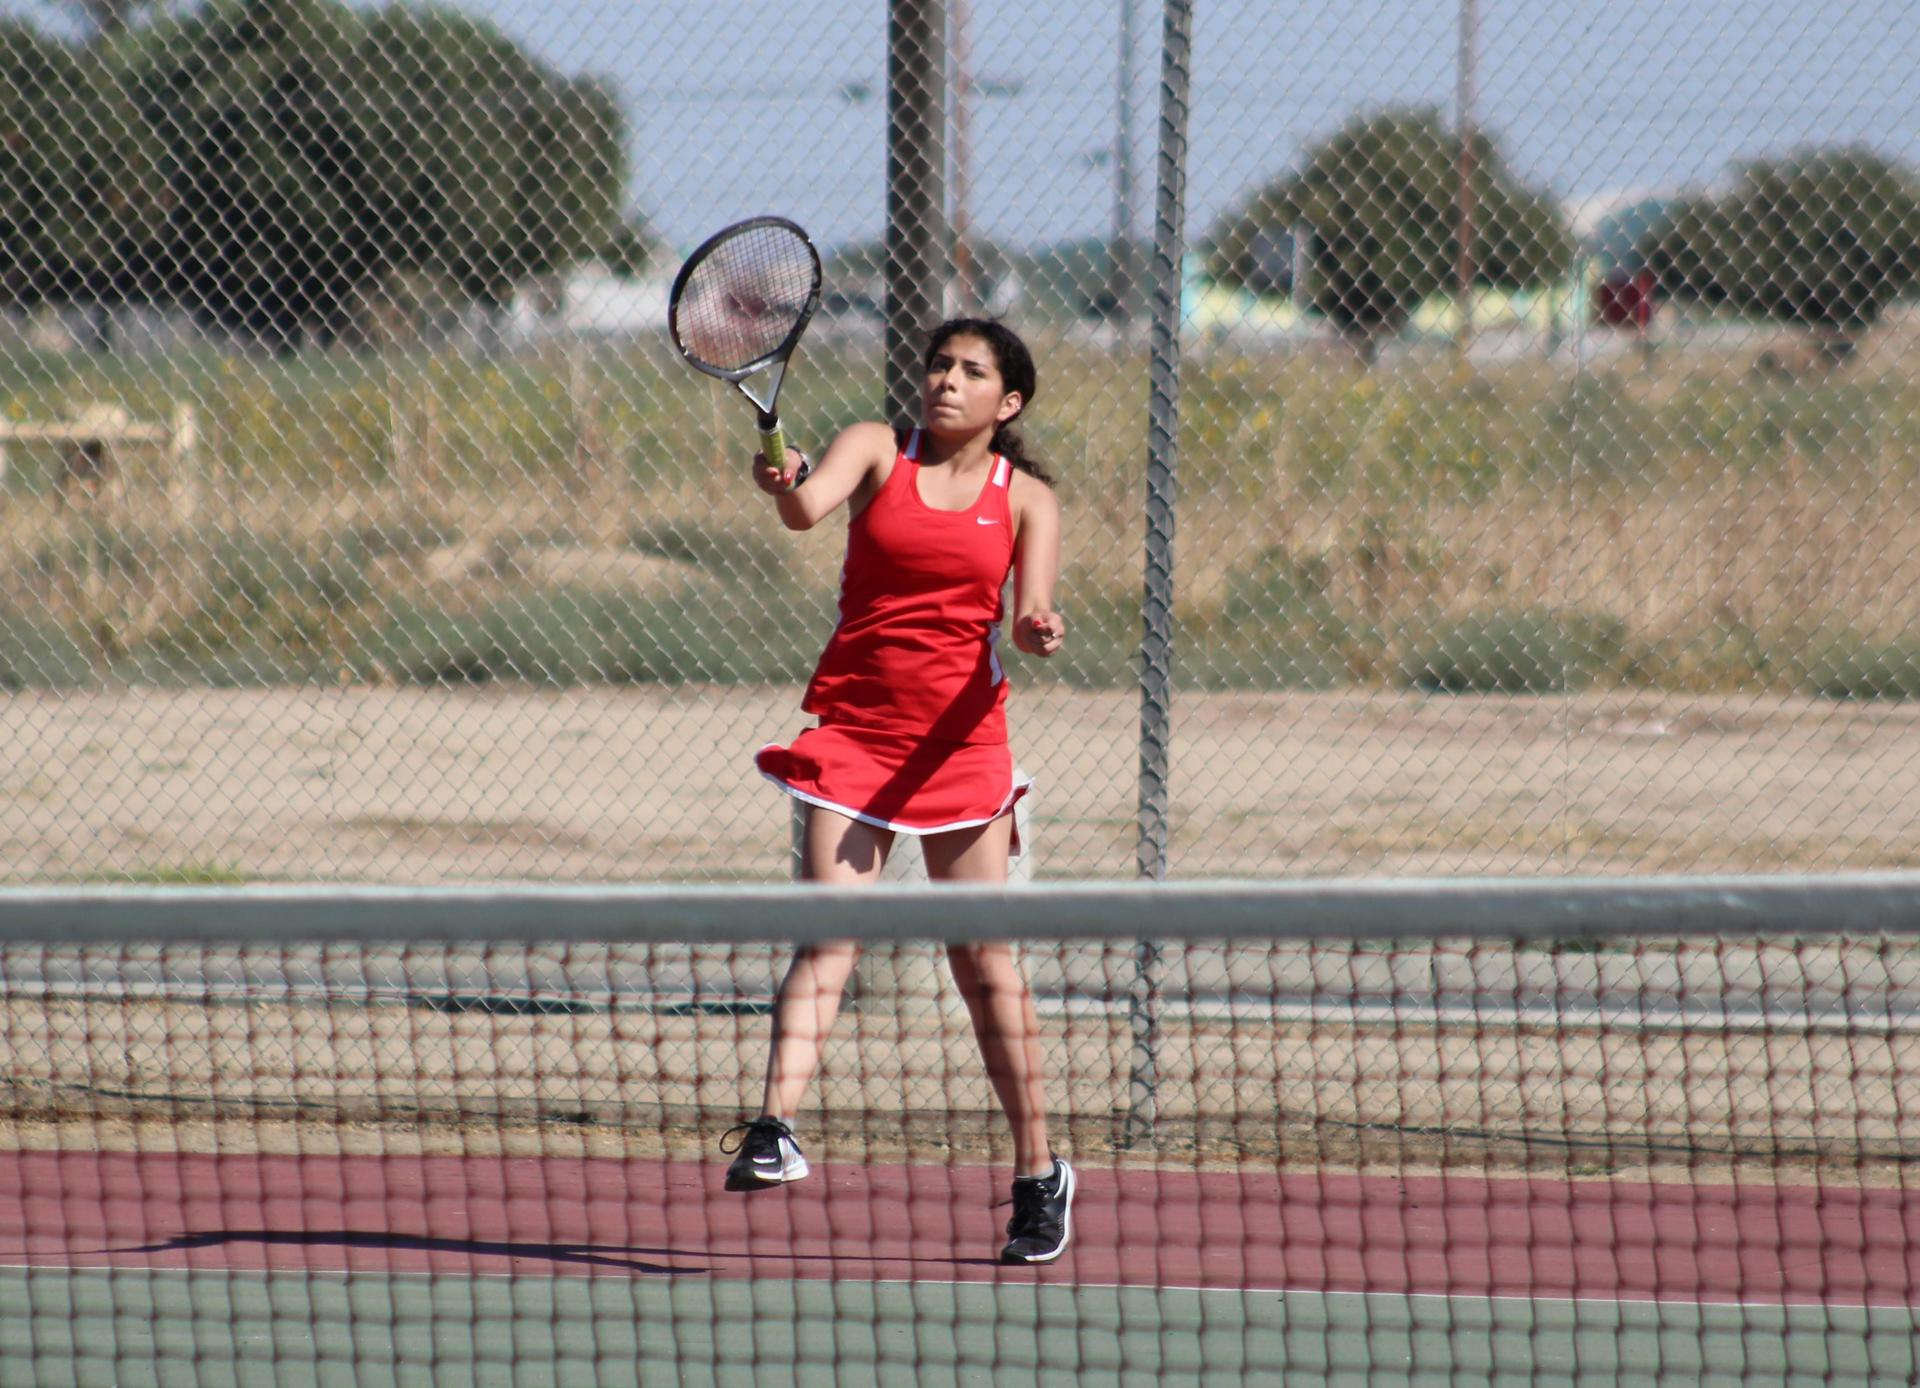 Girls playing Tennis against Selma